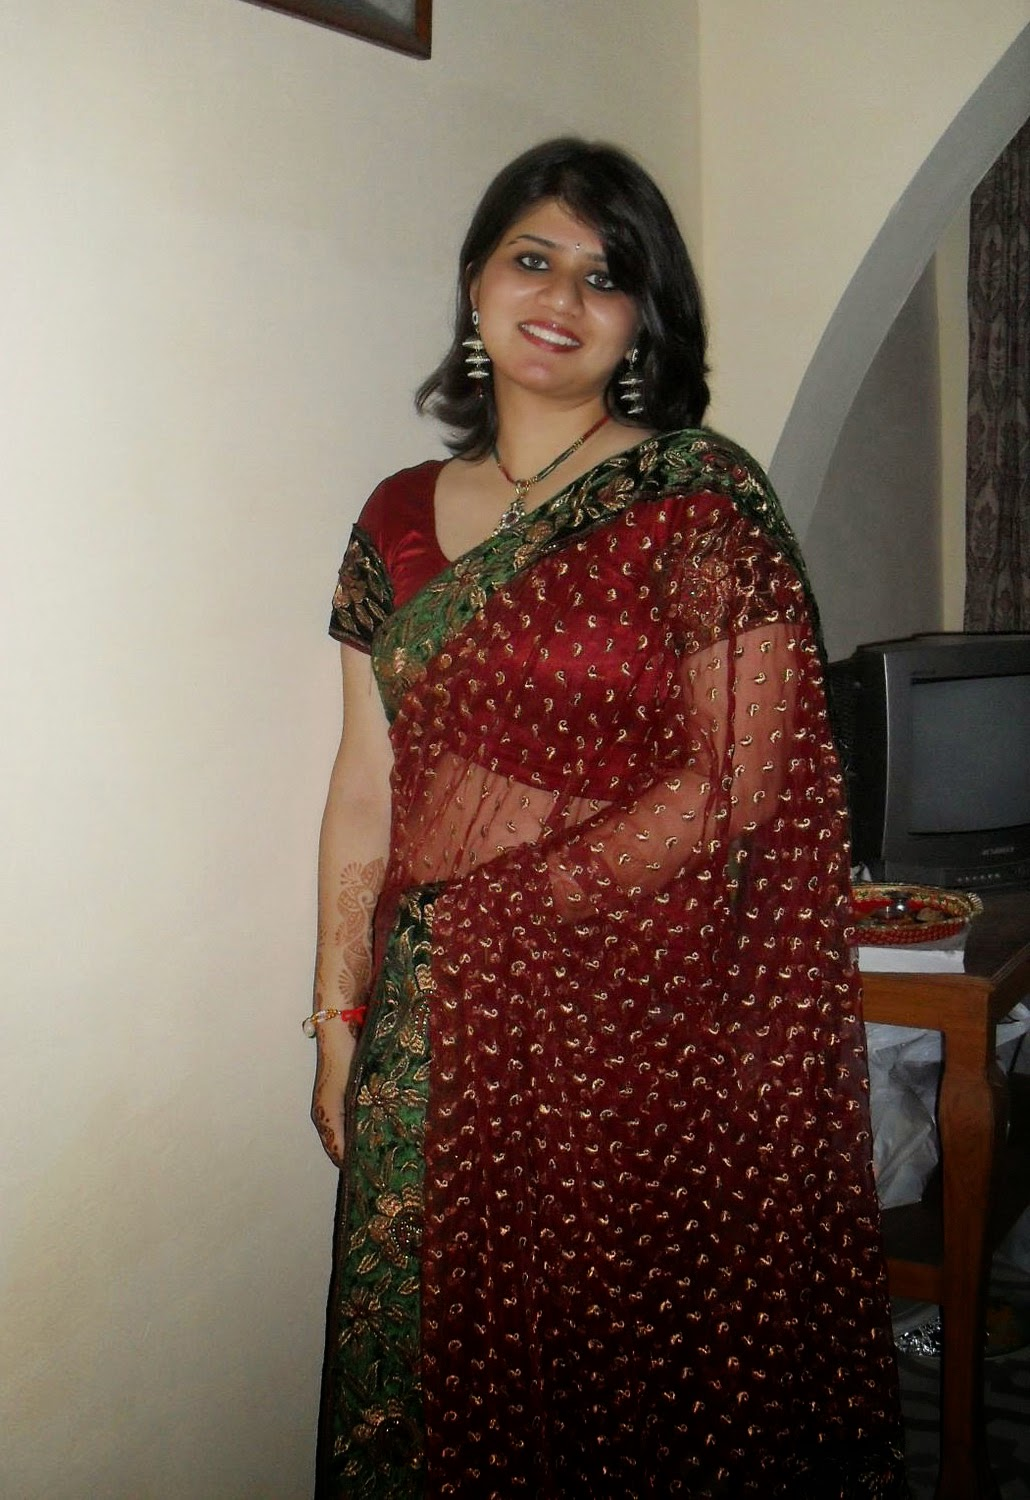 desi bhabhi saree photo